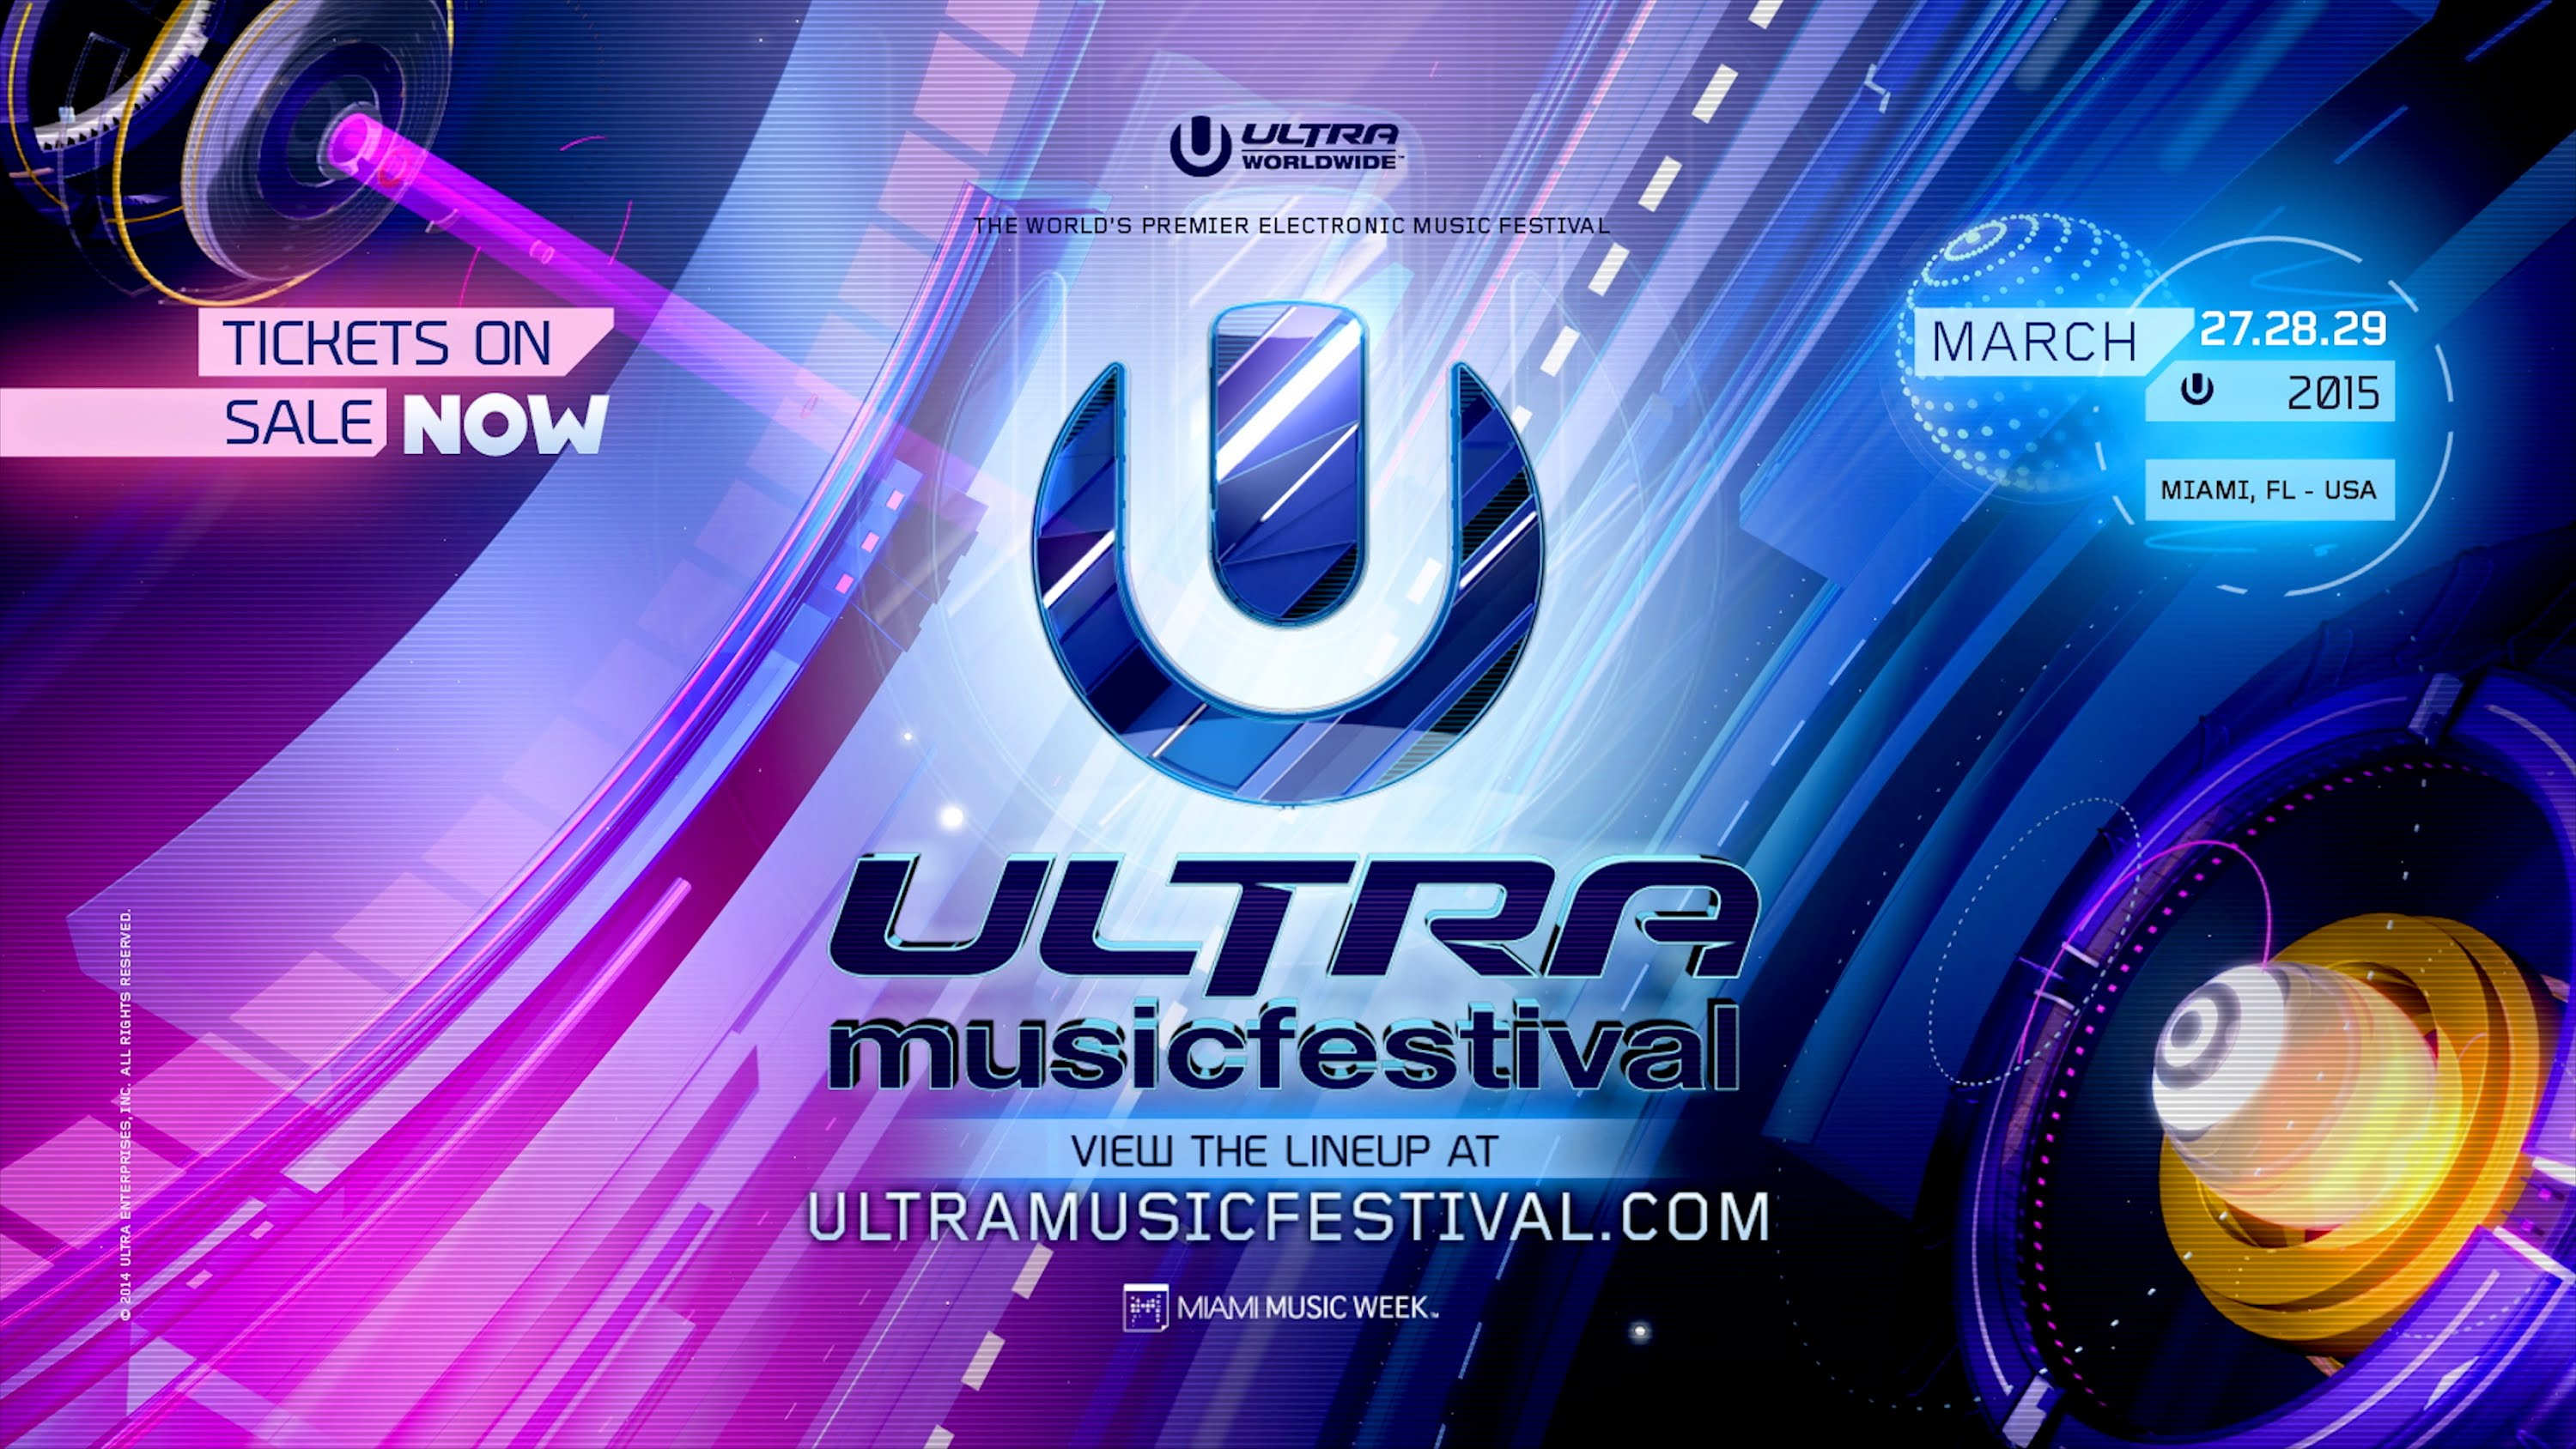 Sander Kleinenberg - Live at Ultra Music Festival (WMC 2017, Miami) - 25-Mar-2017